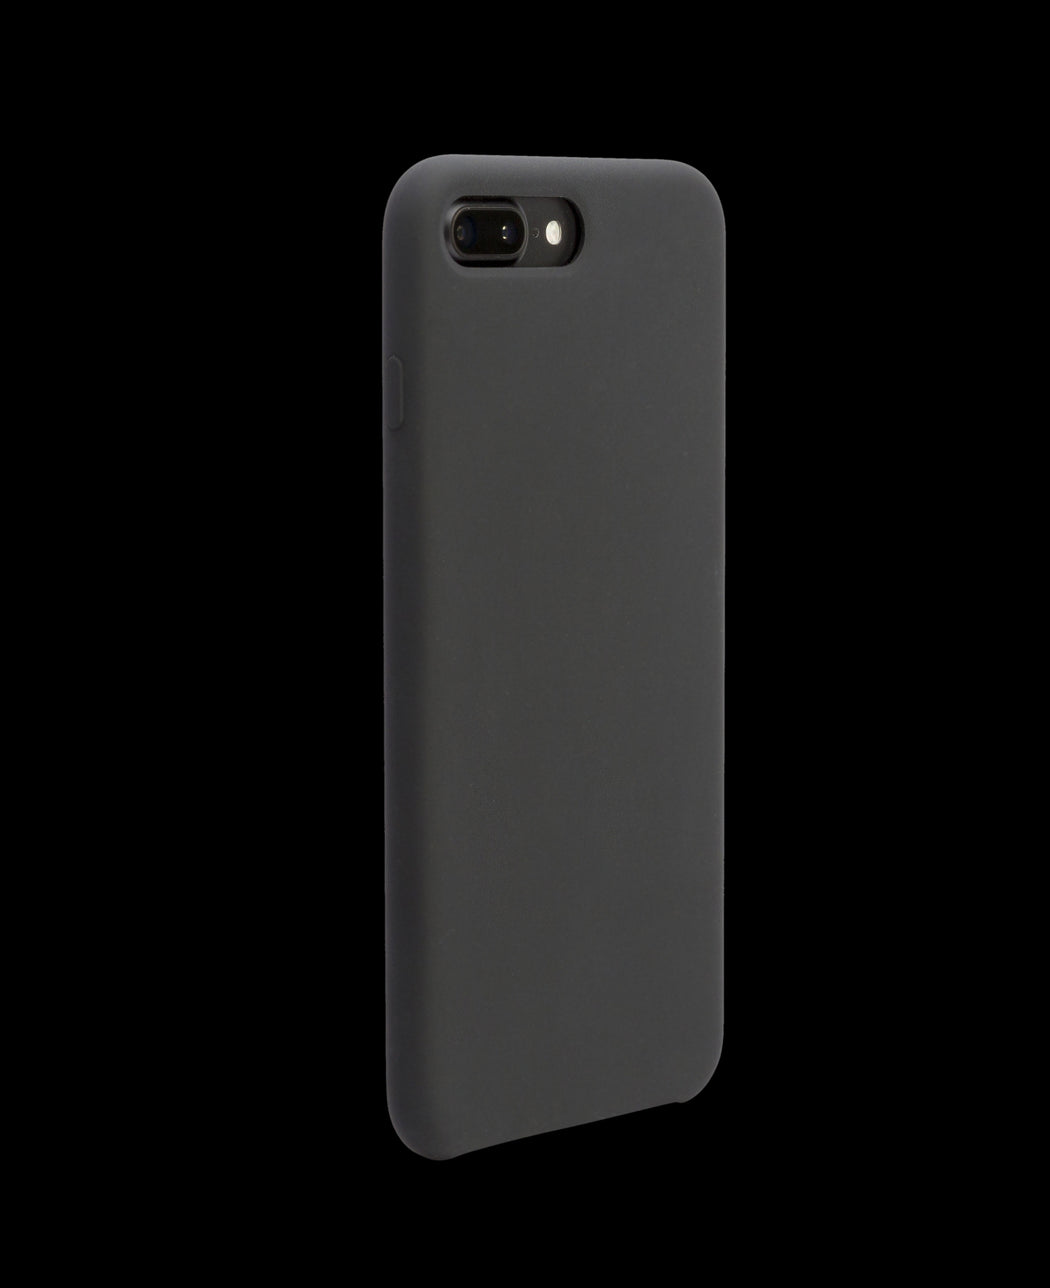 Black Silicon Case - iPhone 7 Plus